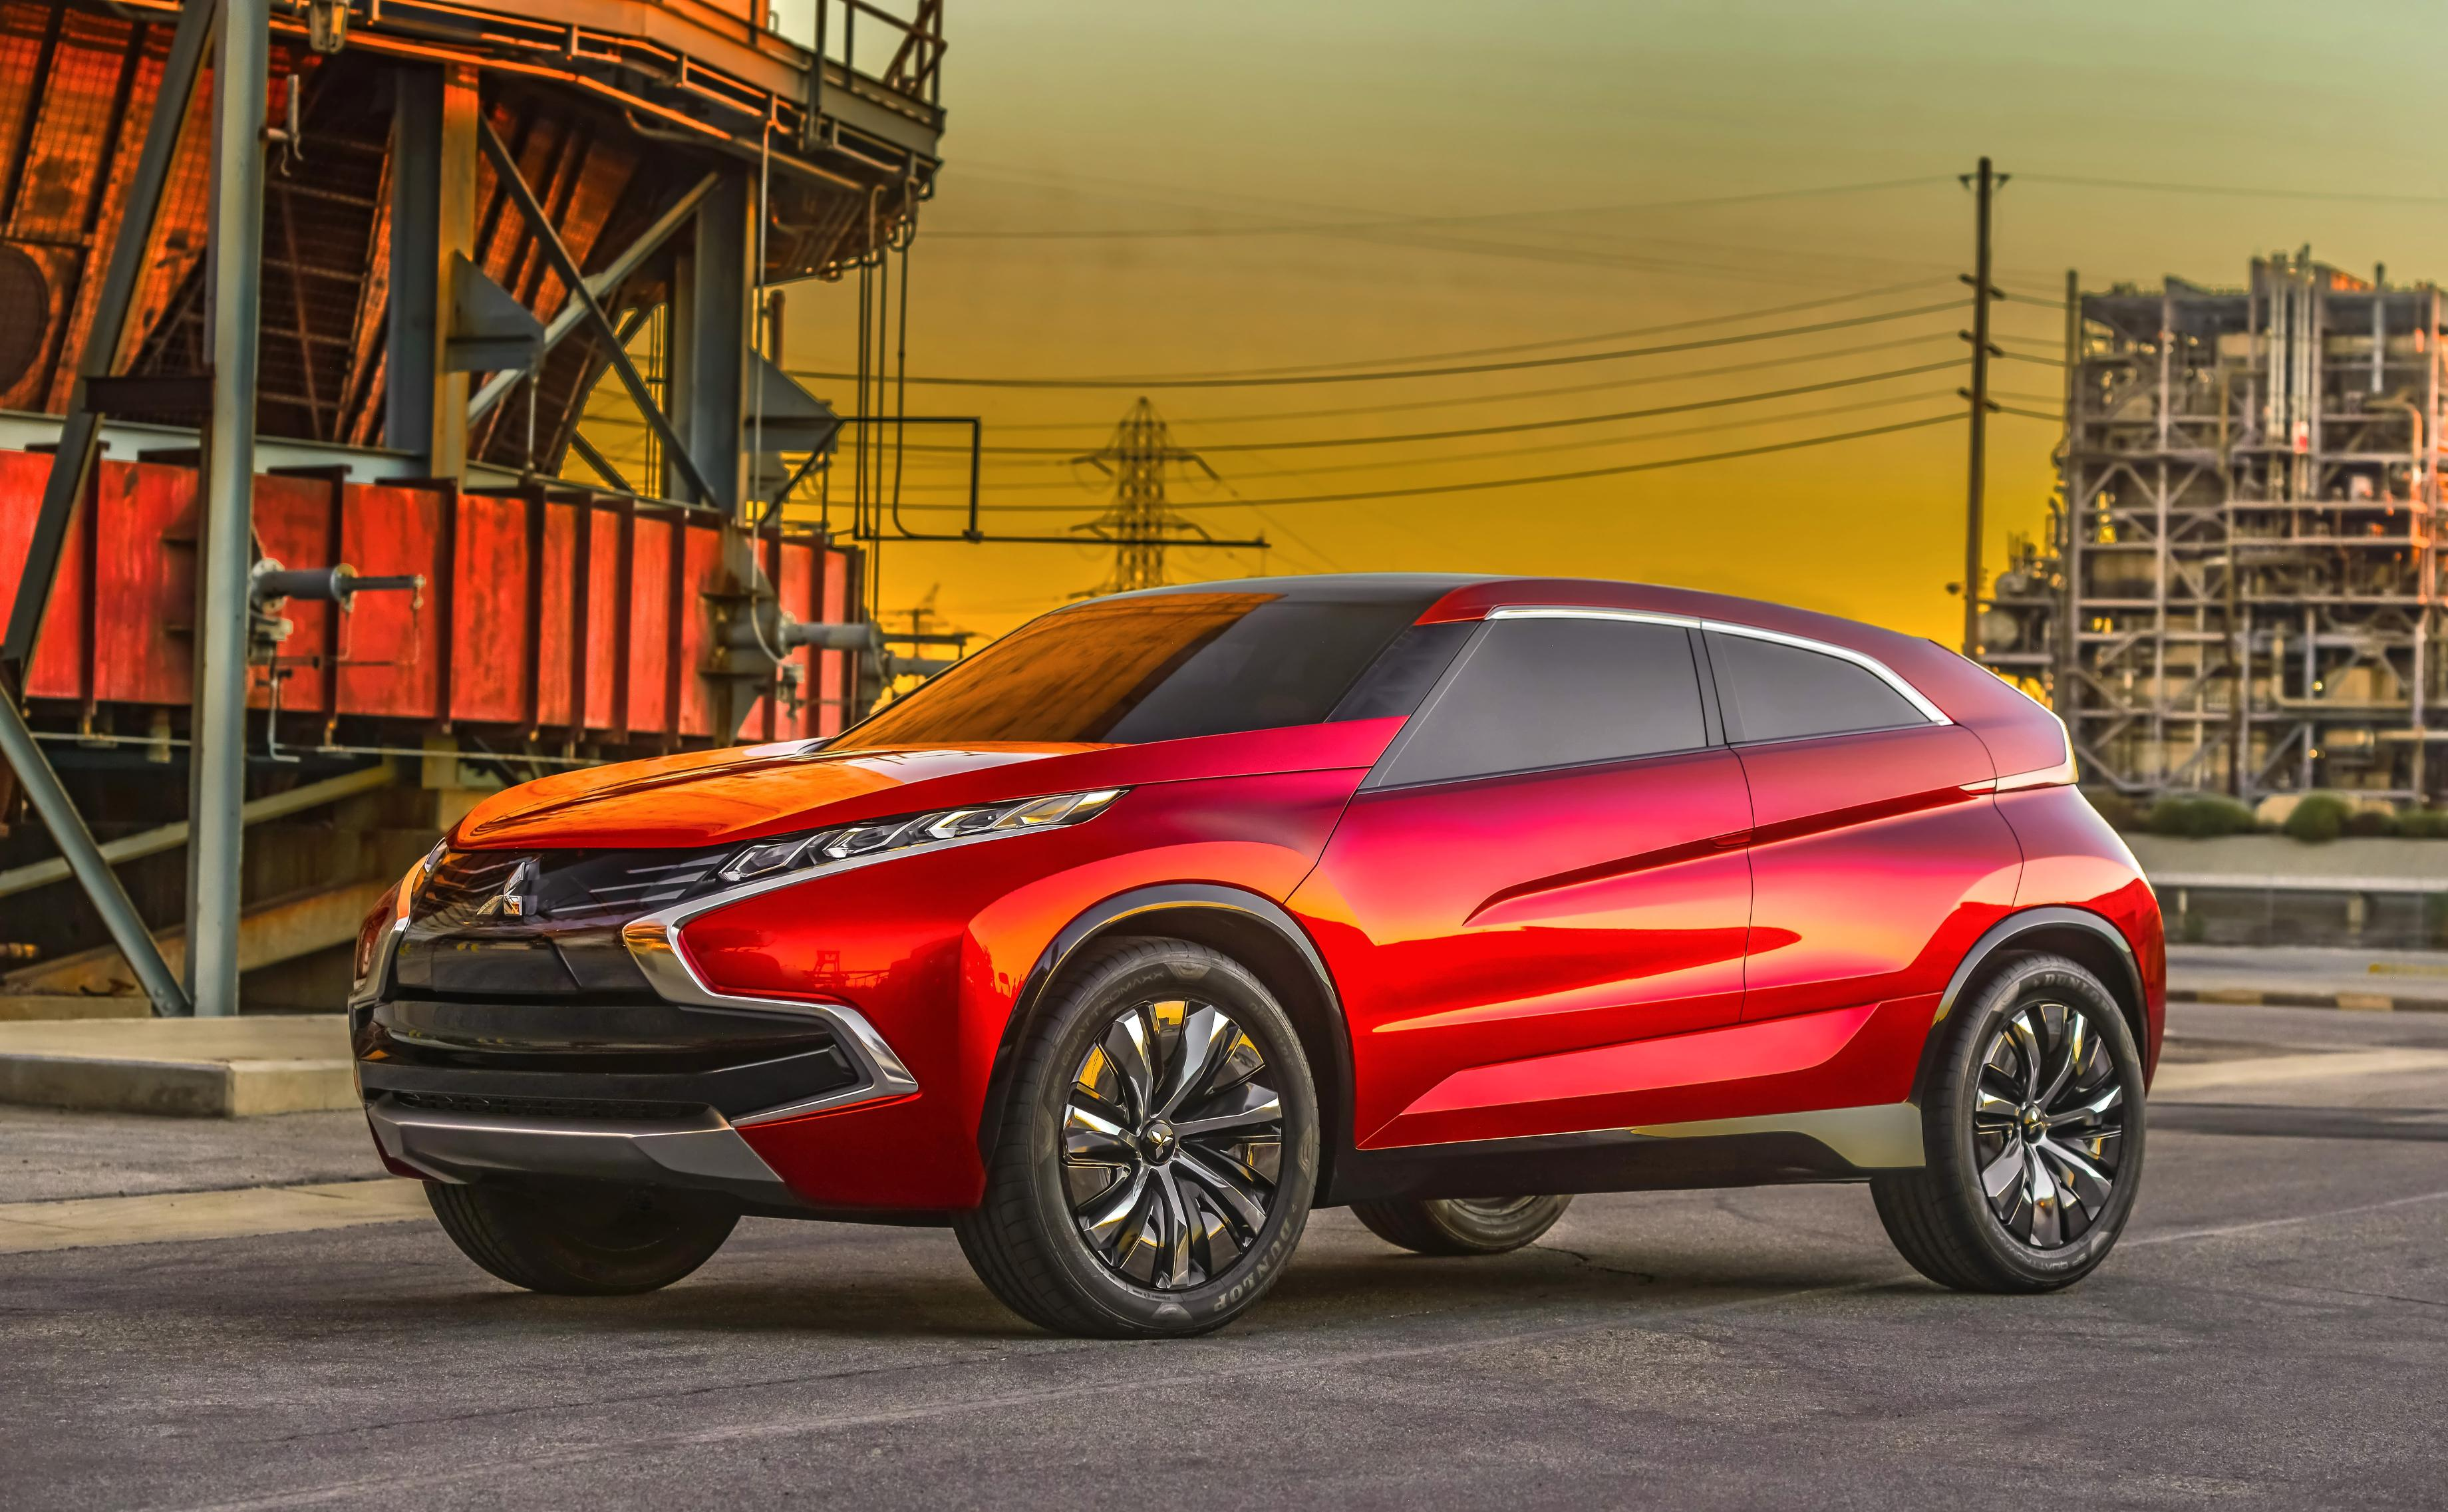 Mitsubishi release details and pics of driver-focused XR-PHEV hybrid